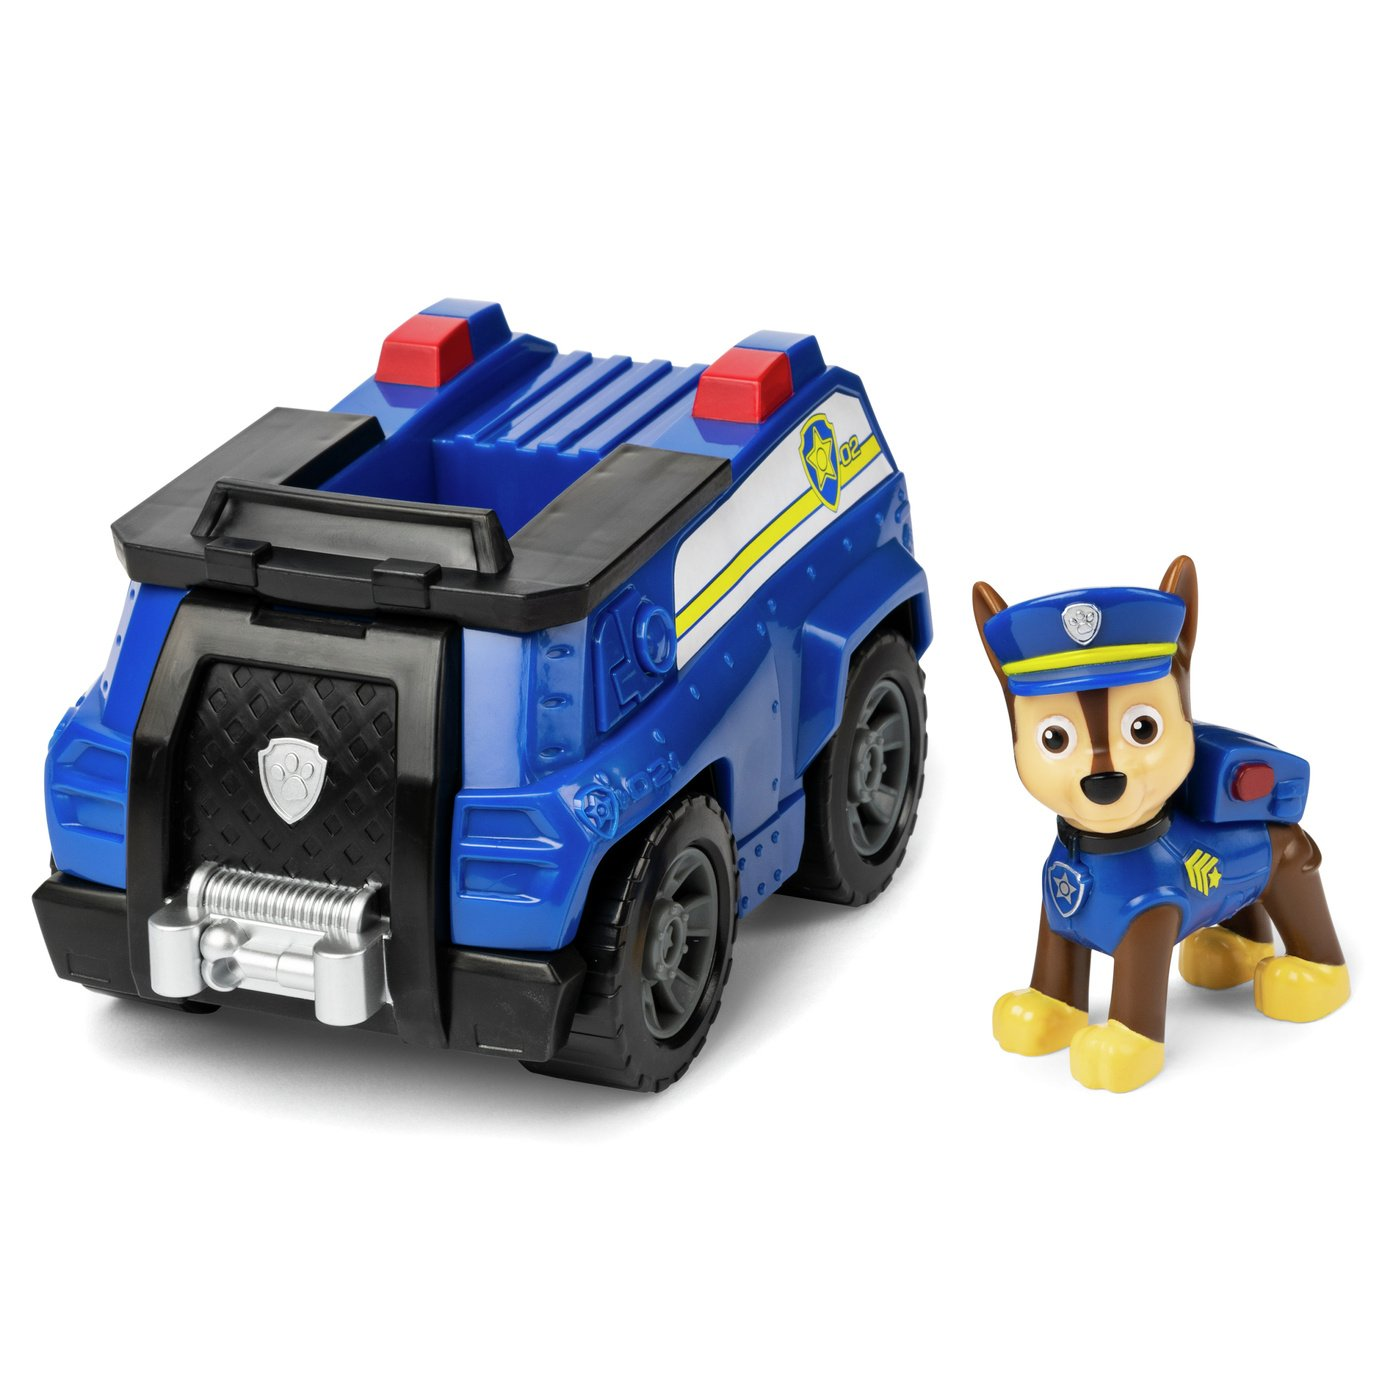 PAW Patrol Chase's Vehicles